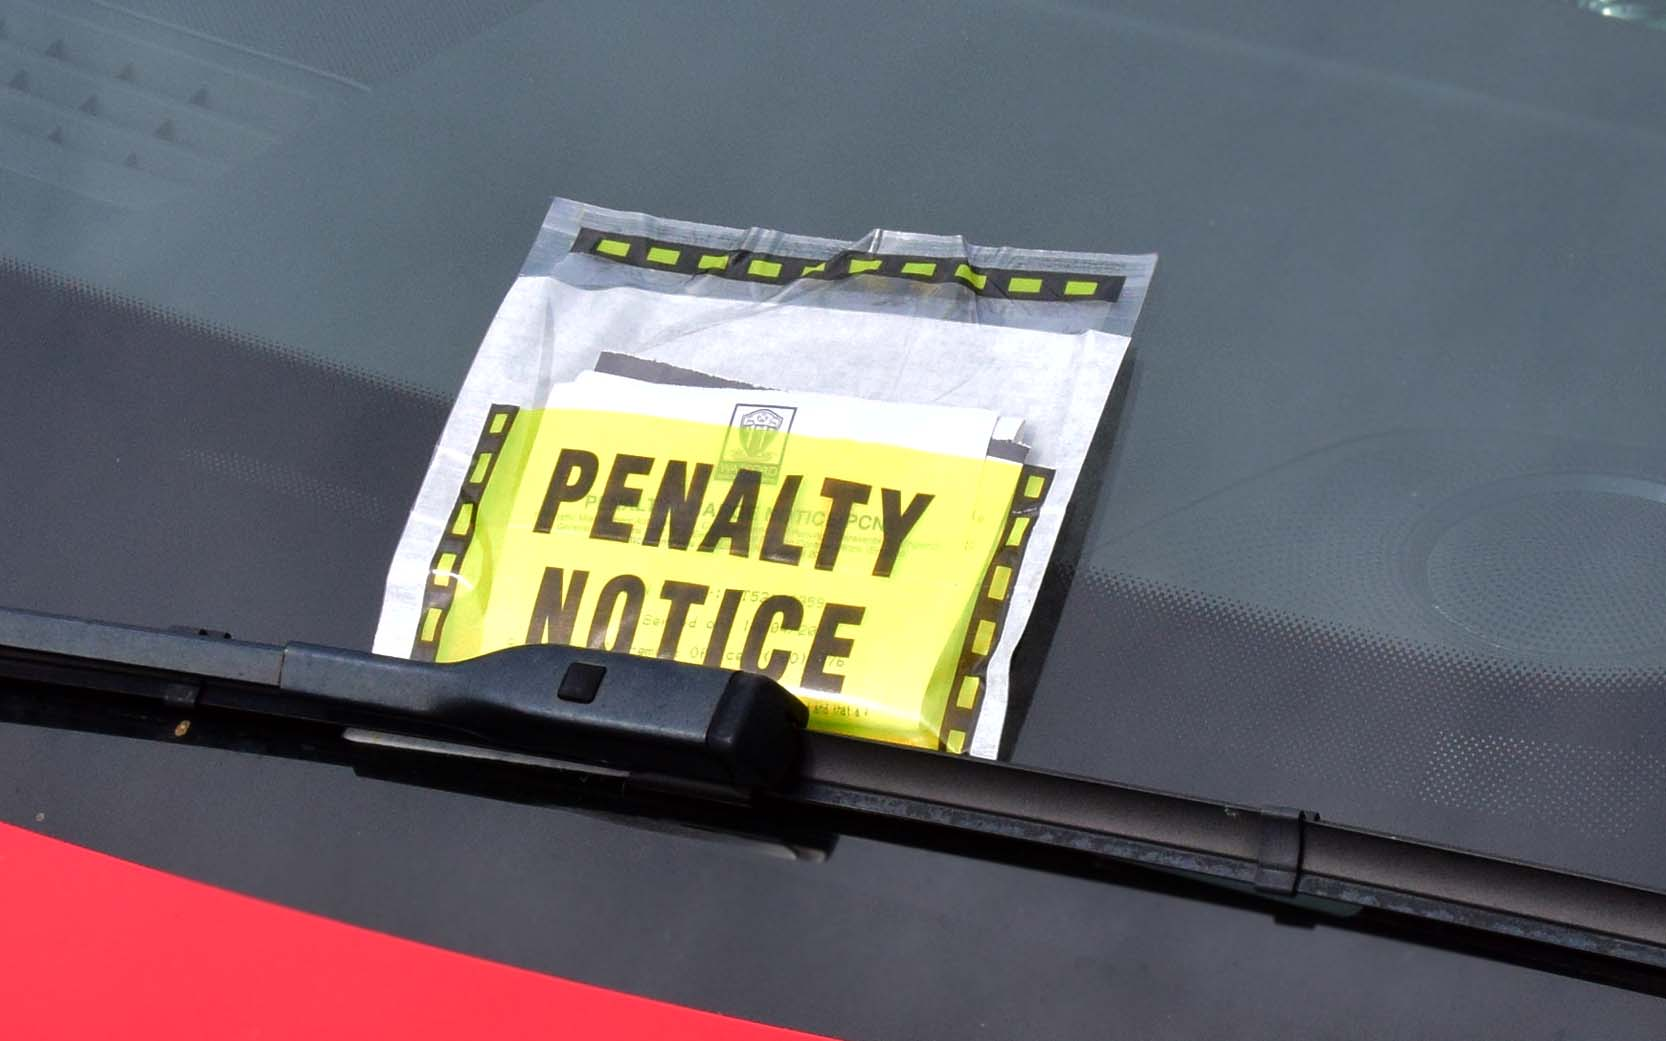 Watford Borough Council withdrew a Parking Ticket that had been issued 'illegally' after they watched this video